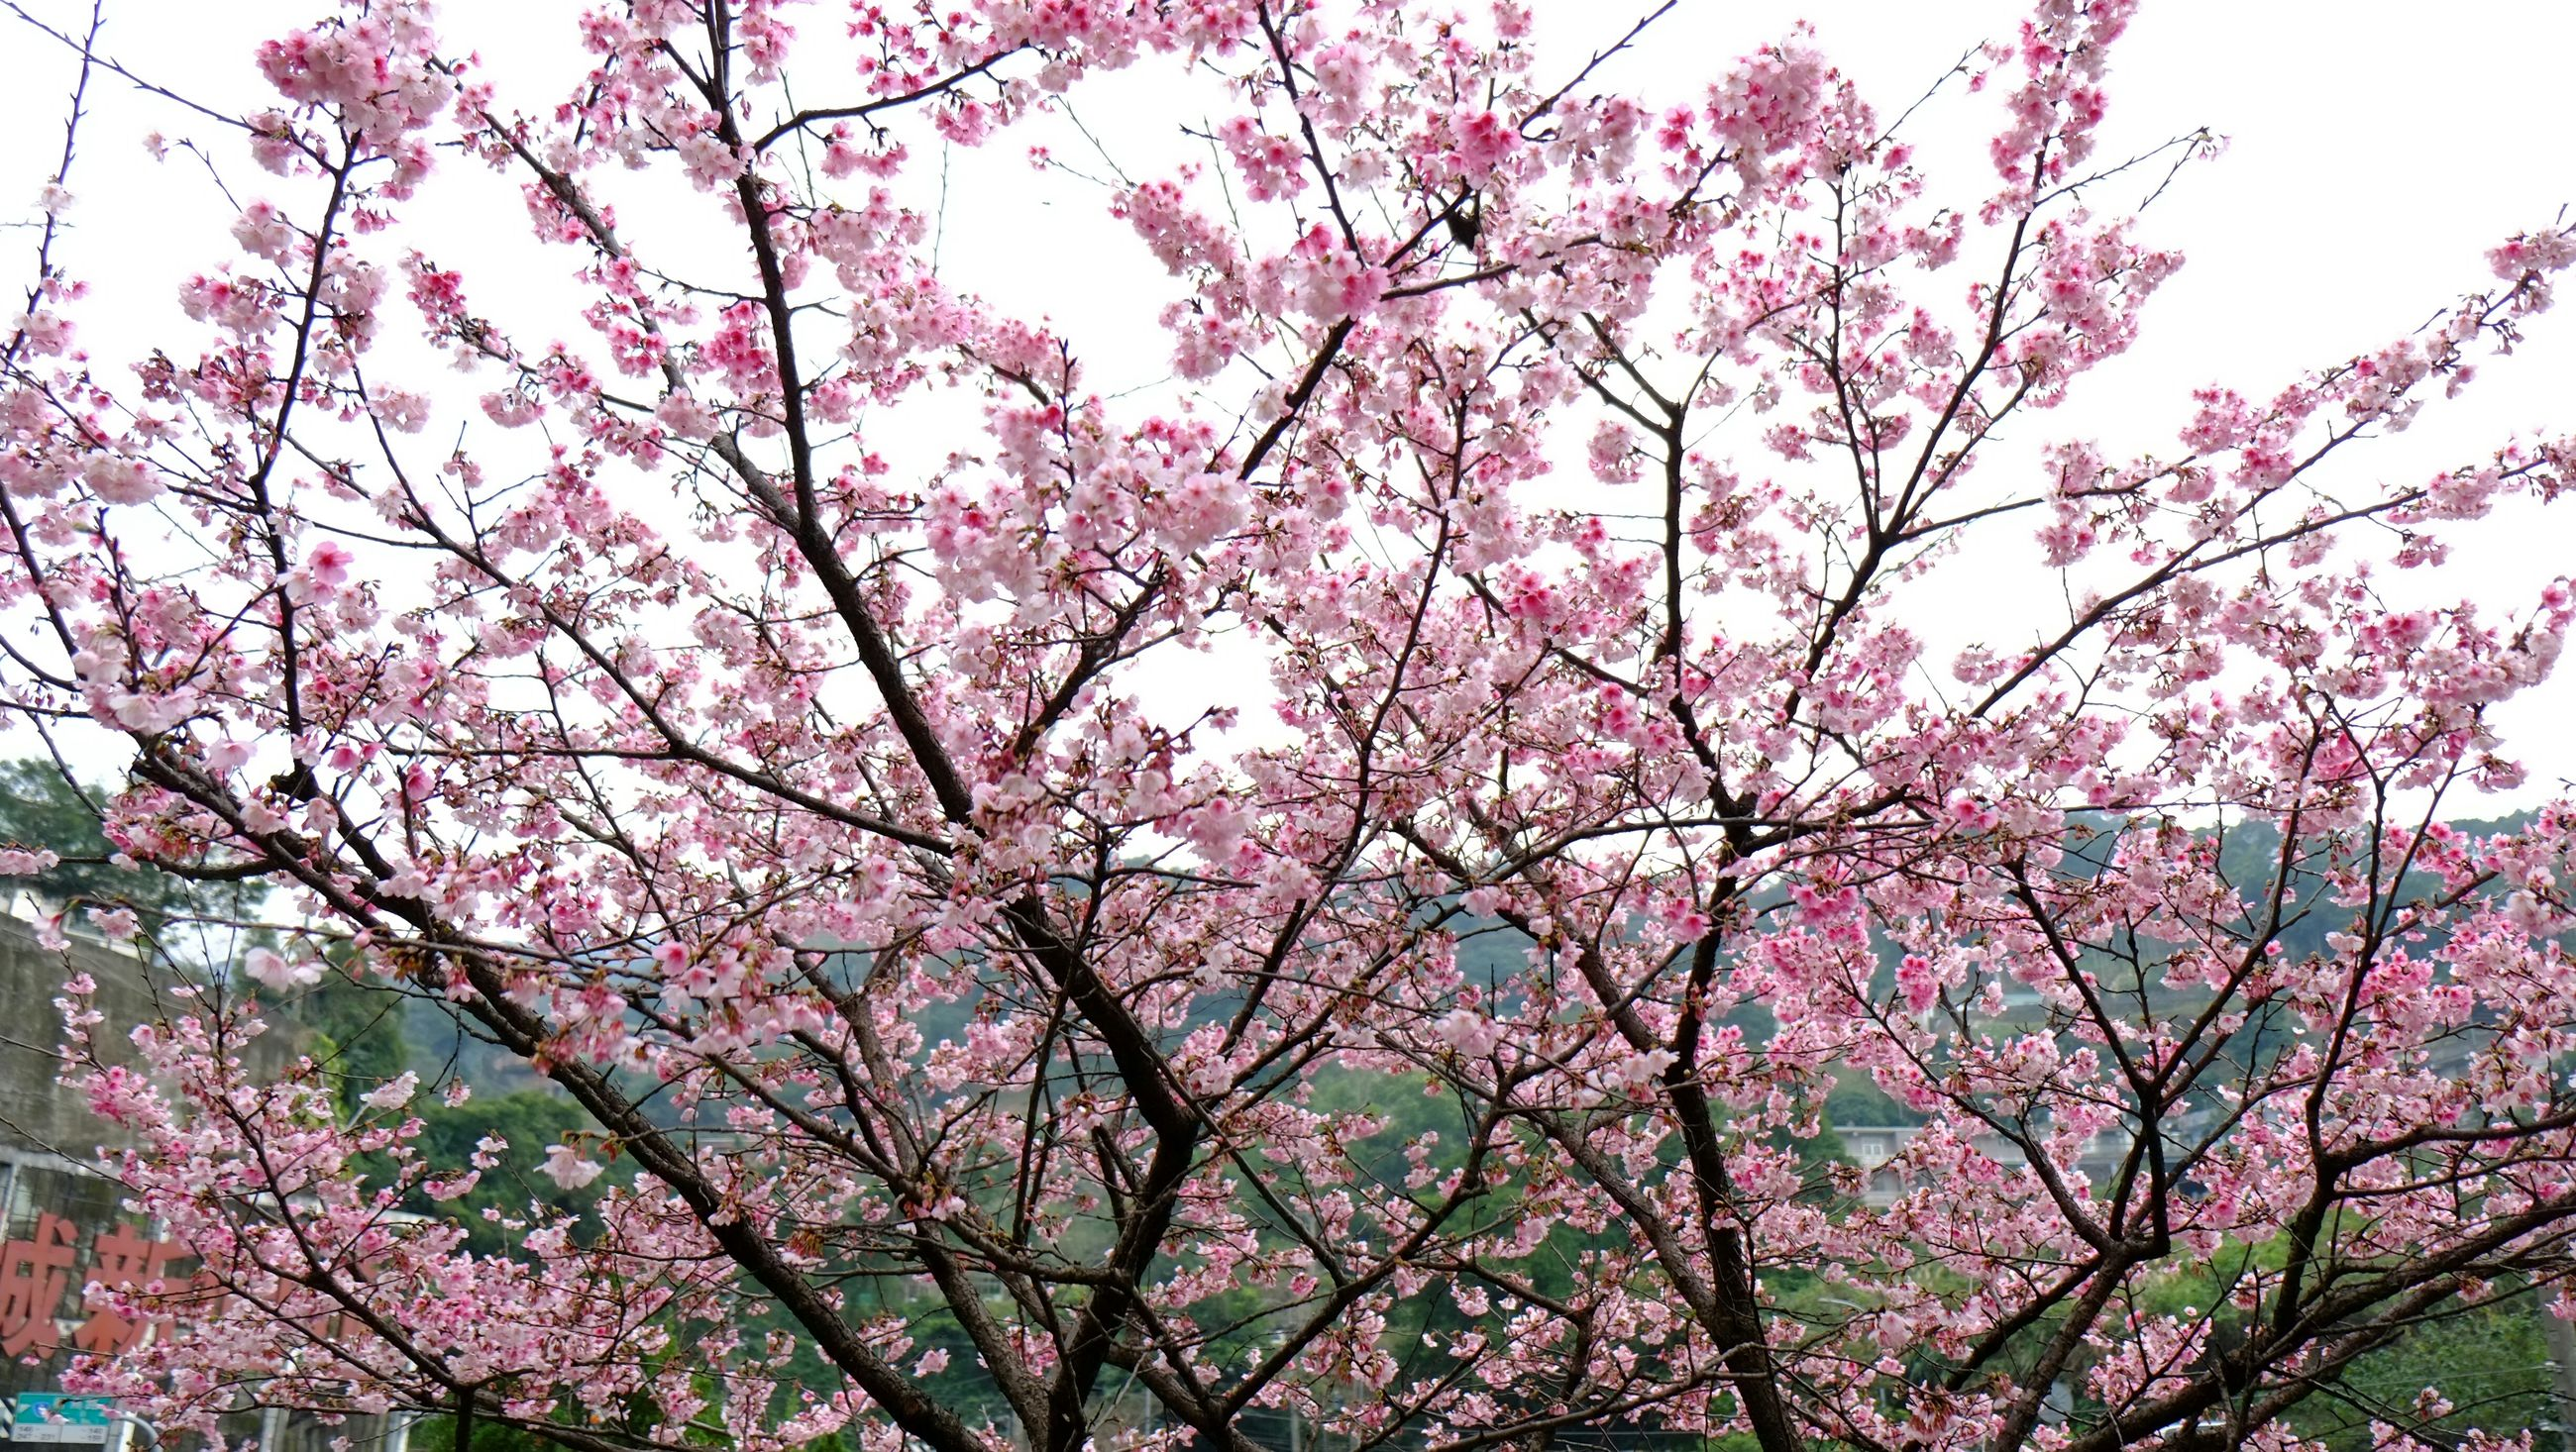 flower, tree, freshness, growth, pink color, branch, beauty in nature, fragility, low angle view, nature, blossom, blooming, in bloom, cherry blossom, sky, springtime, pink, day, clear sky, cherry tree